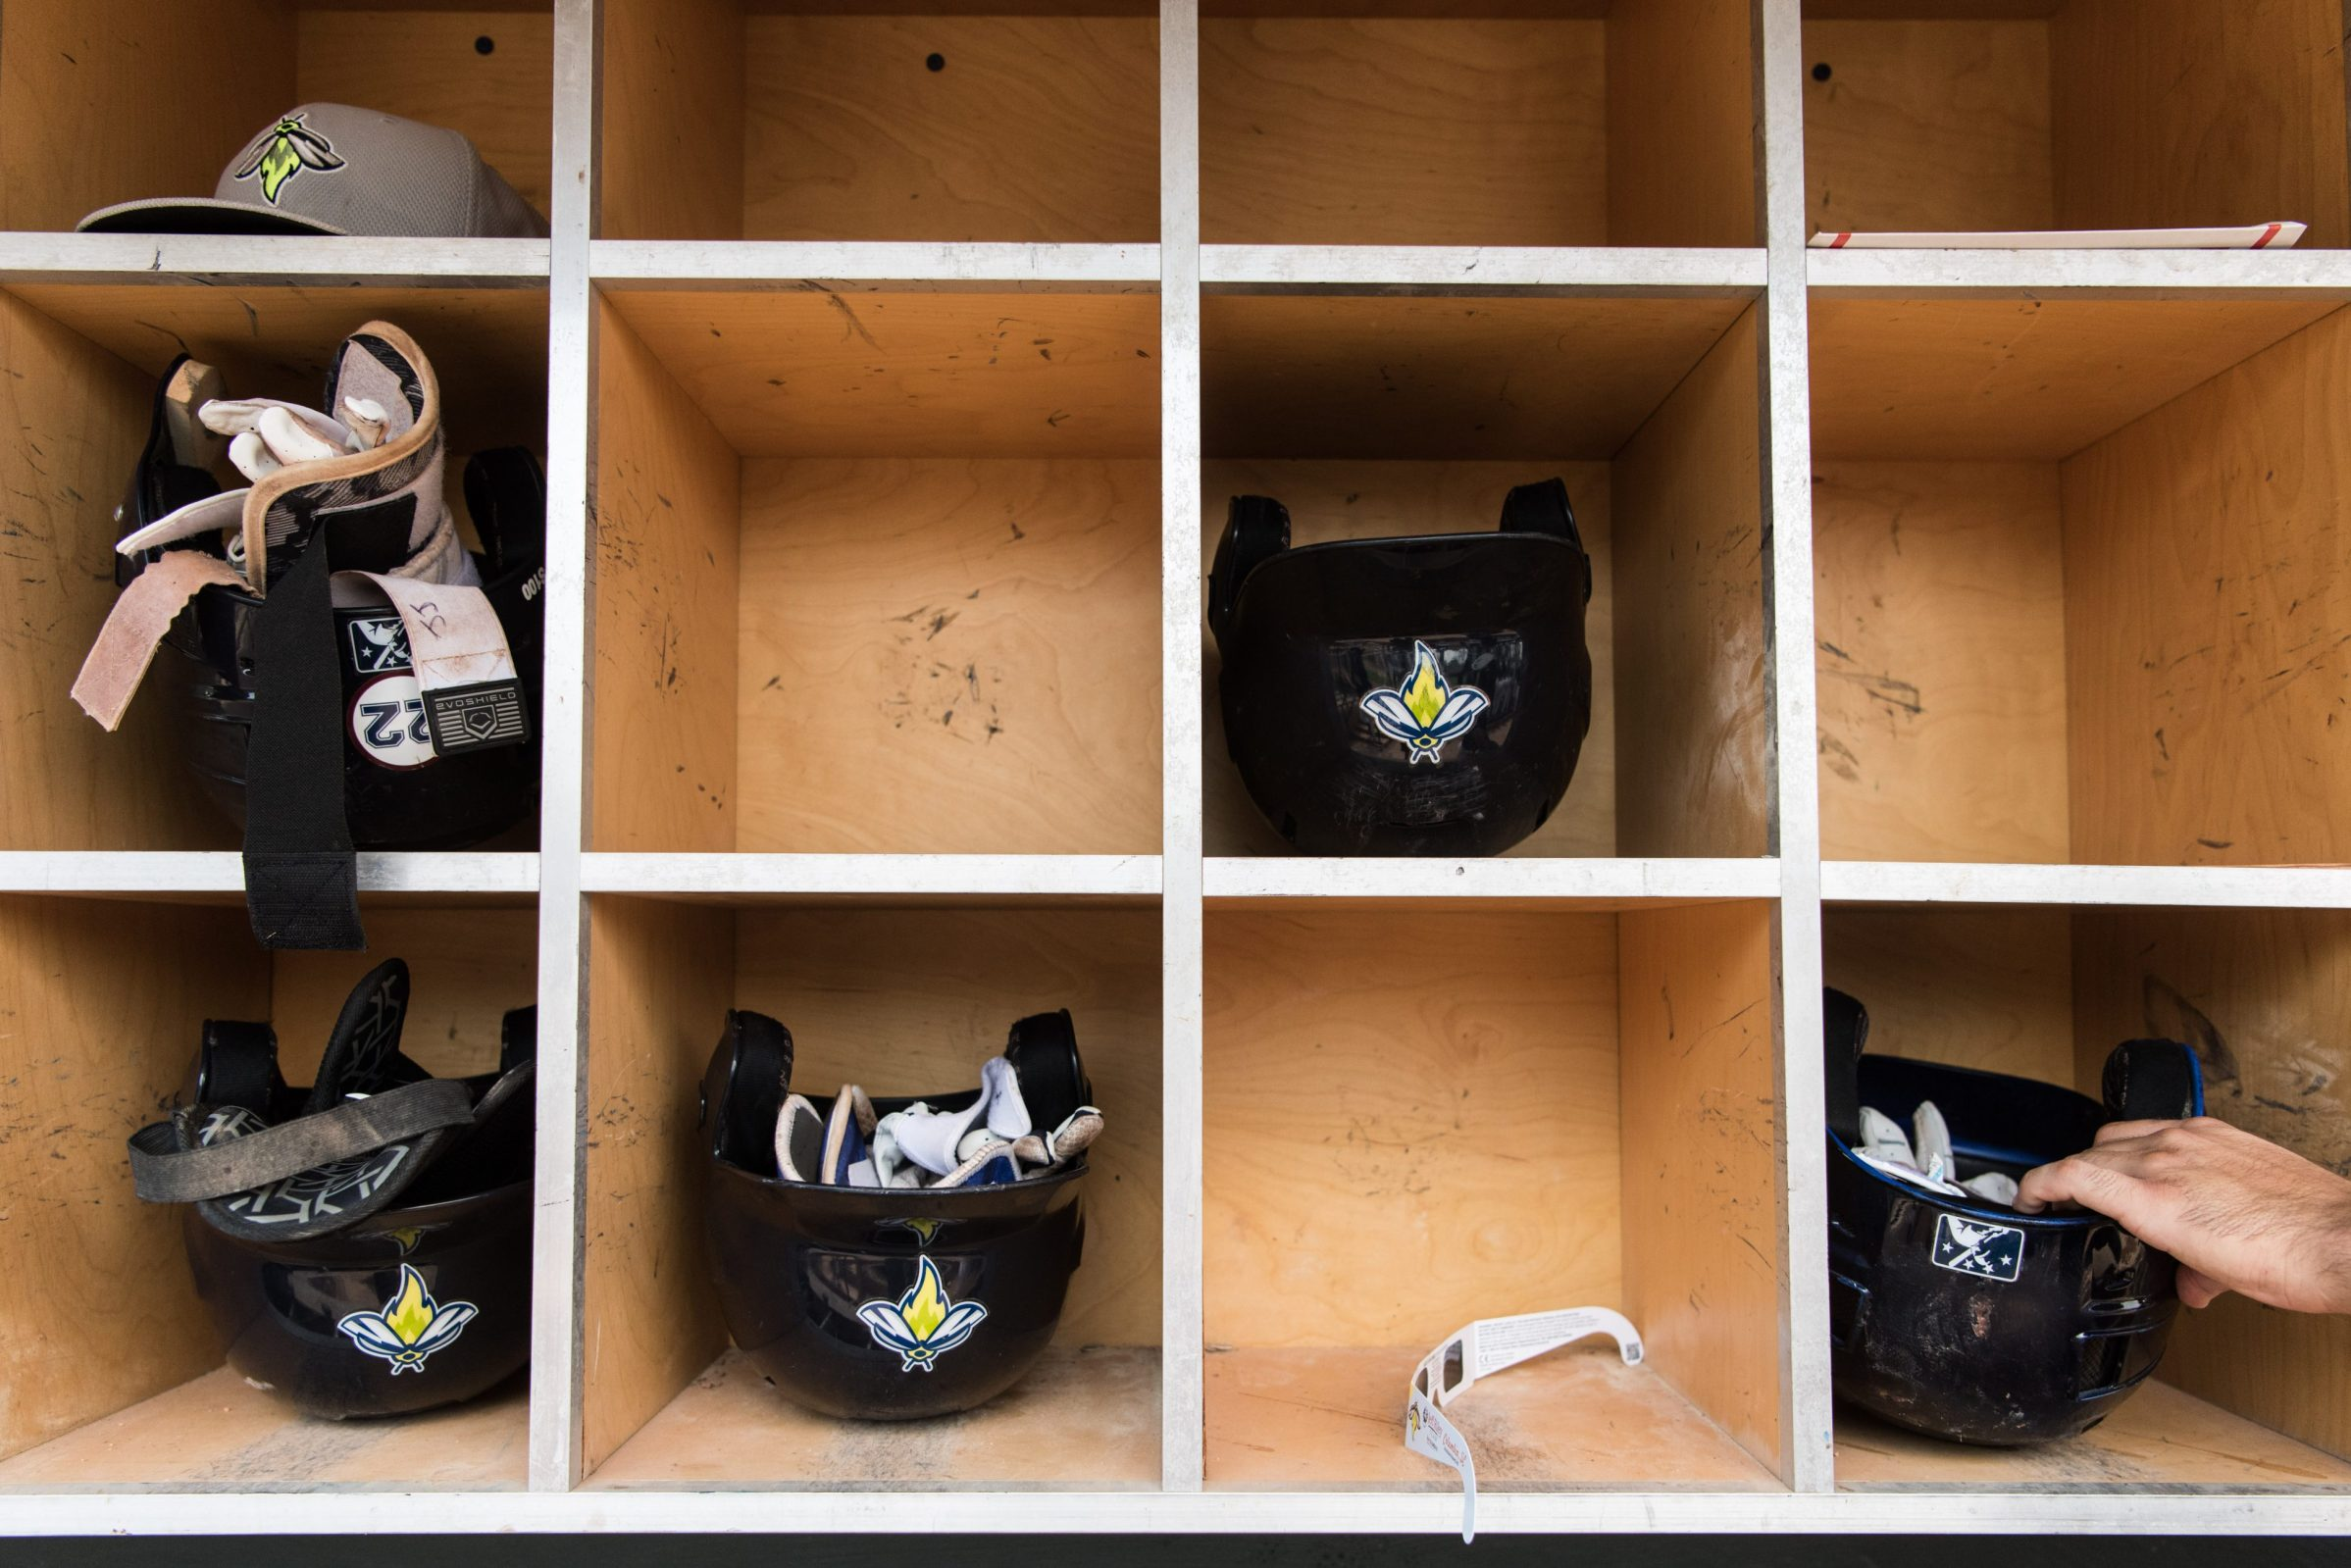 Helmets (and a pair of eclipse glasses) in the dugout of a minor league baseball team in Columbia, SC.